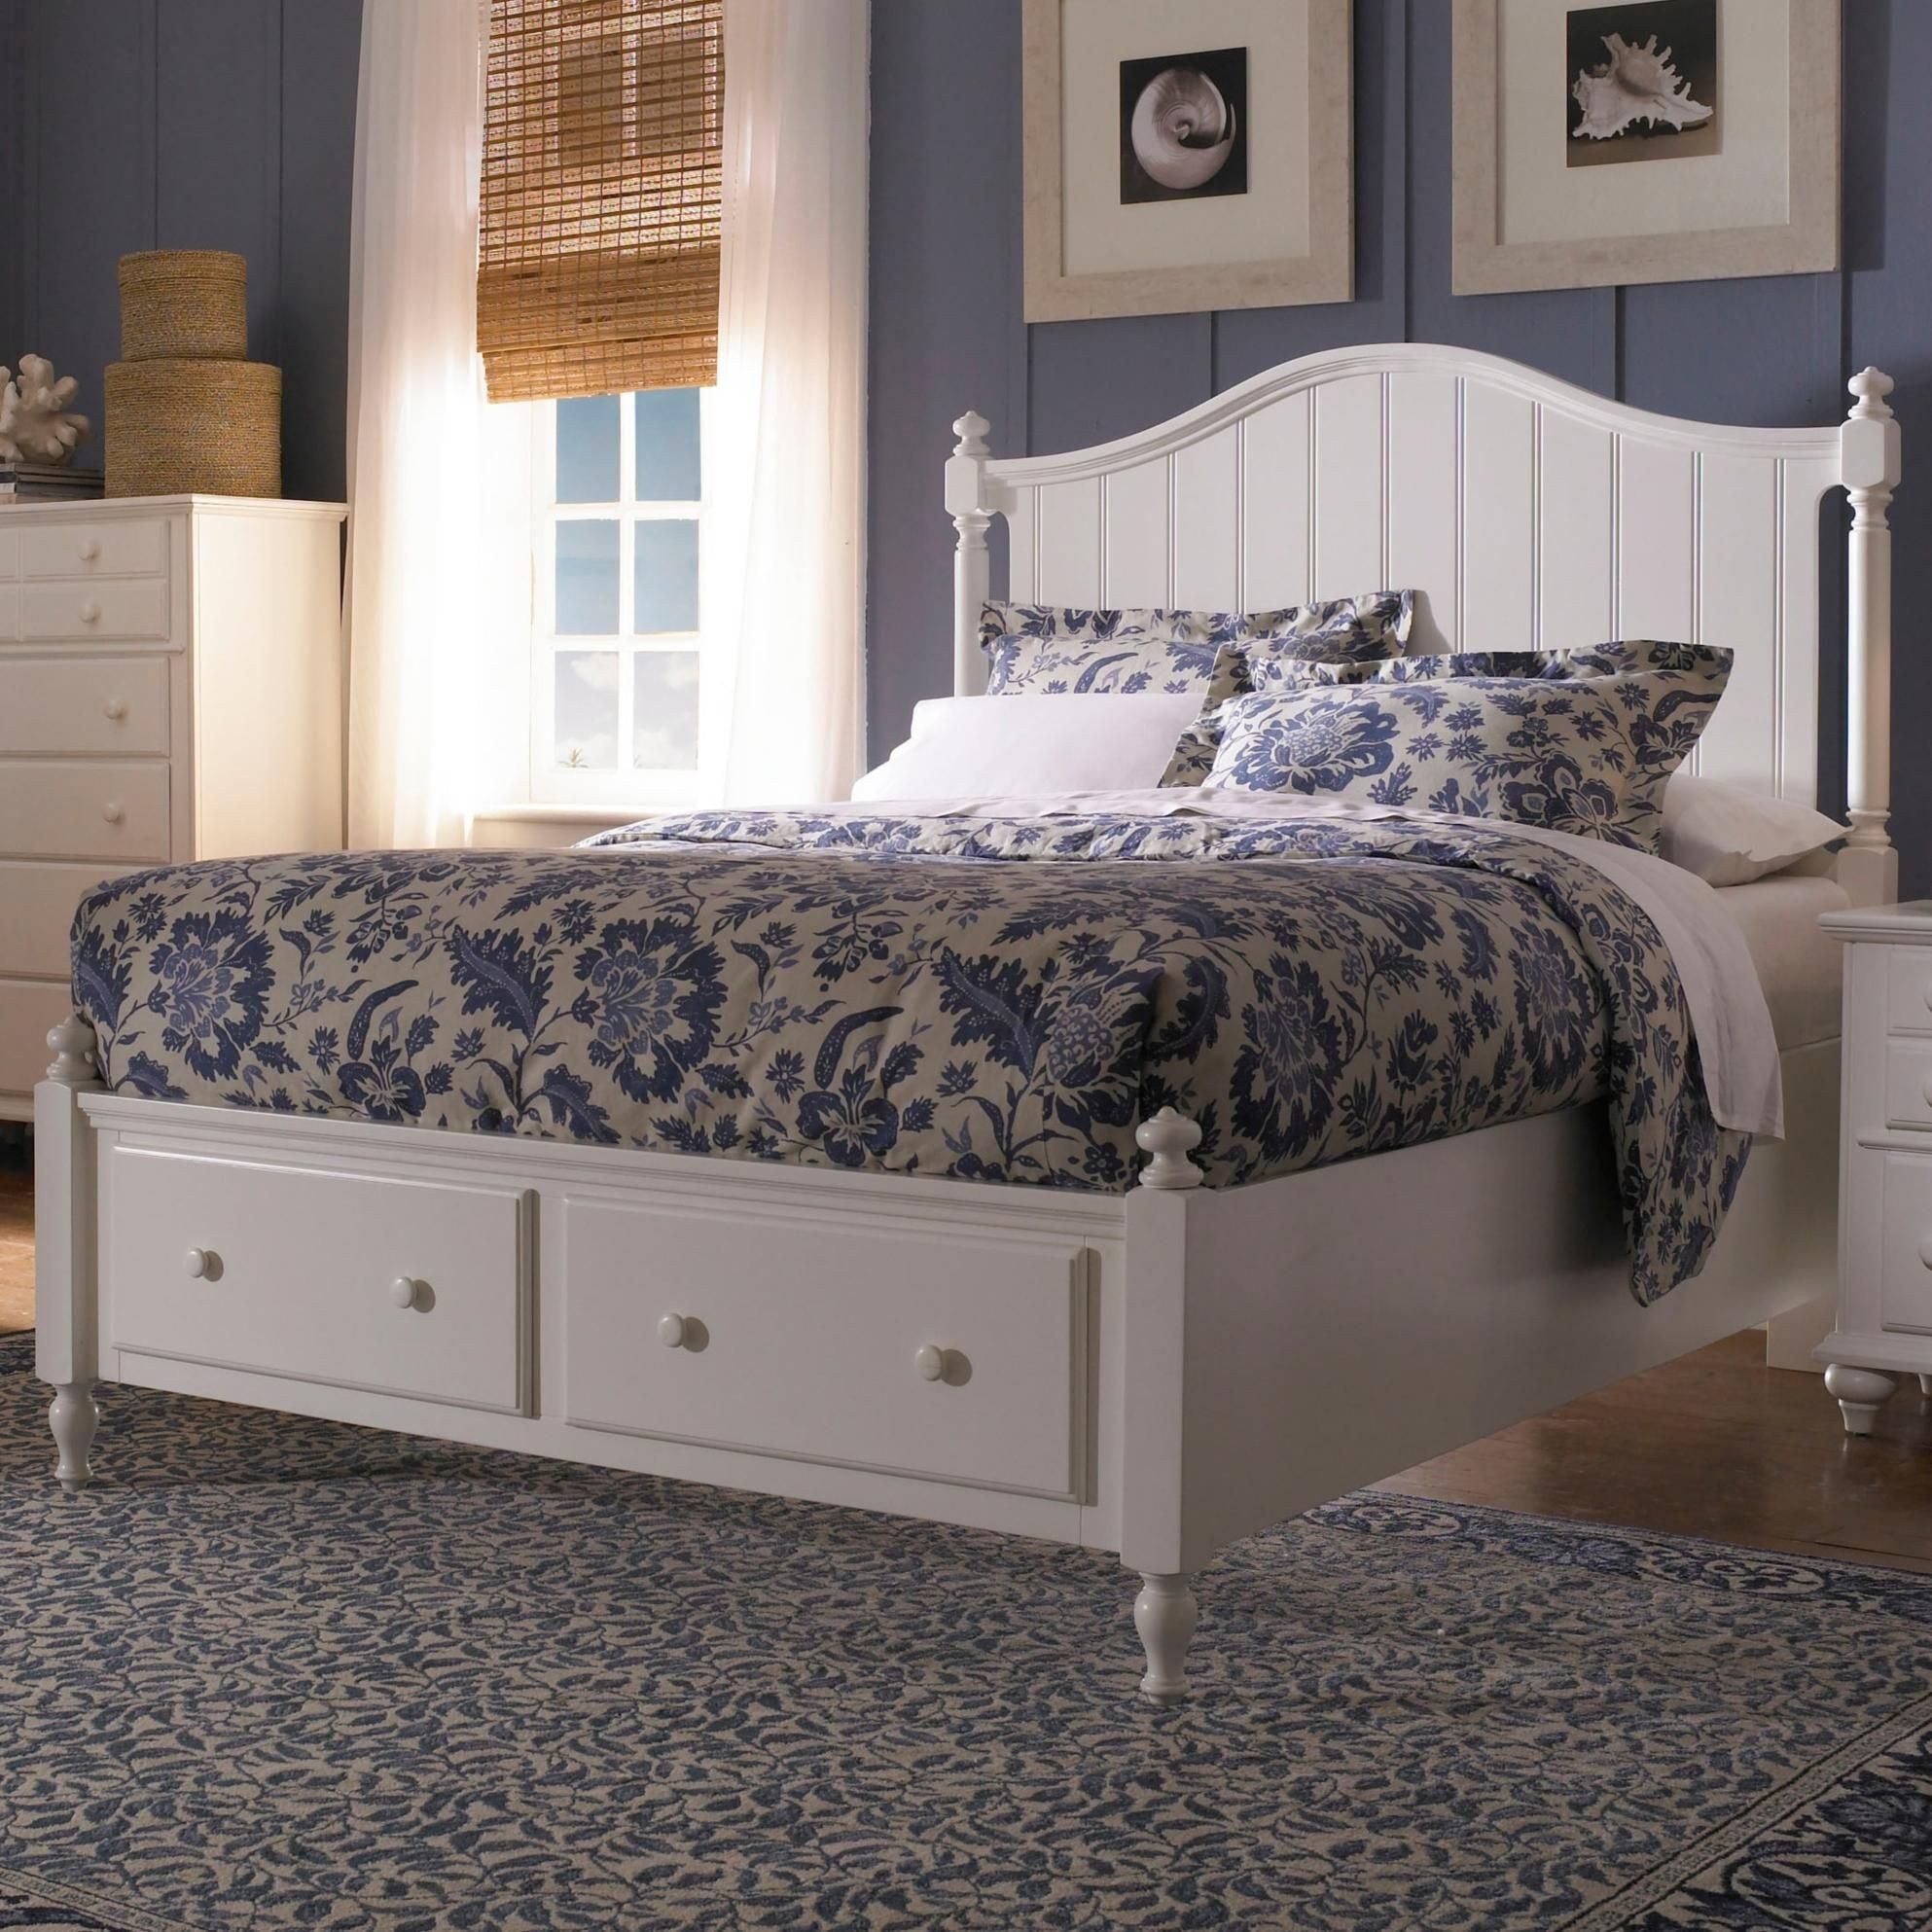 Queen Bedroom Set White Best Of Hayden Place Queen Headboard and Storage Footboard Bed by